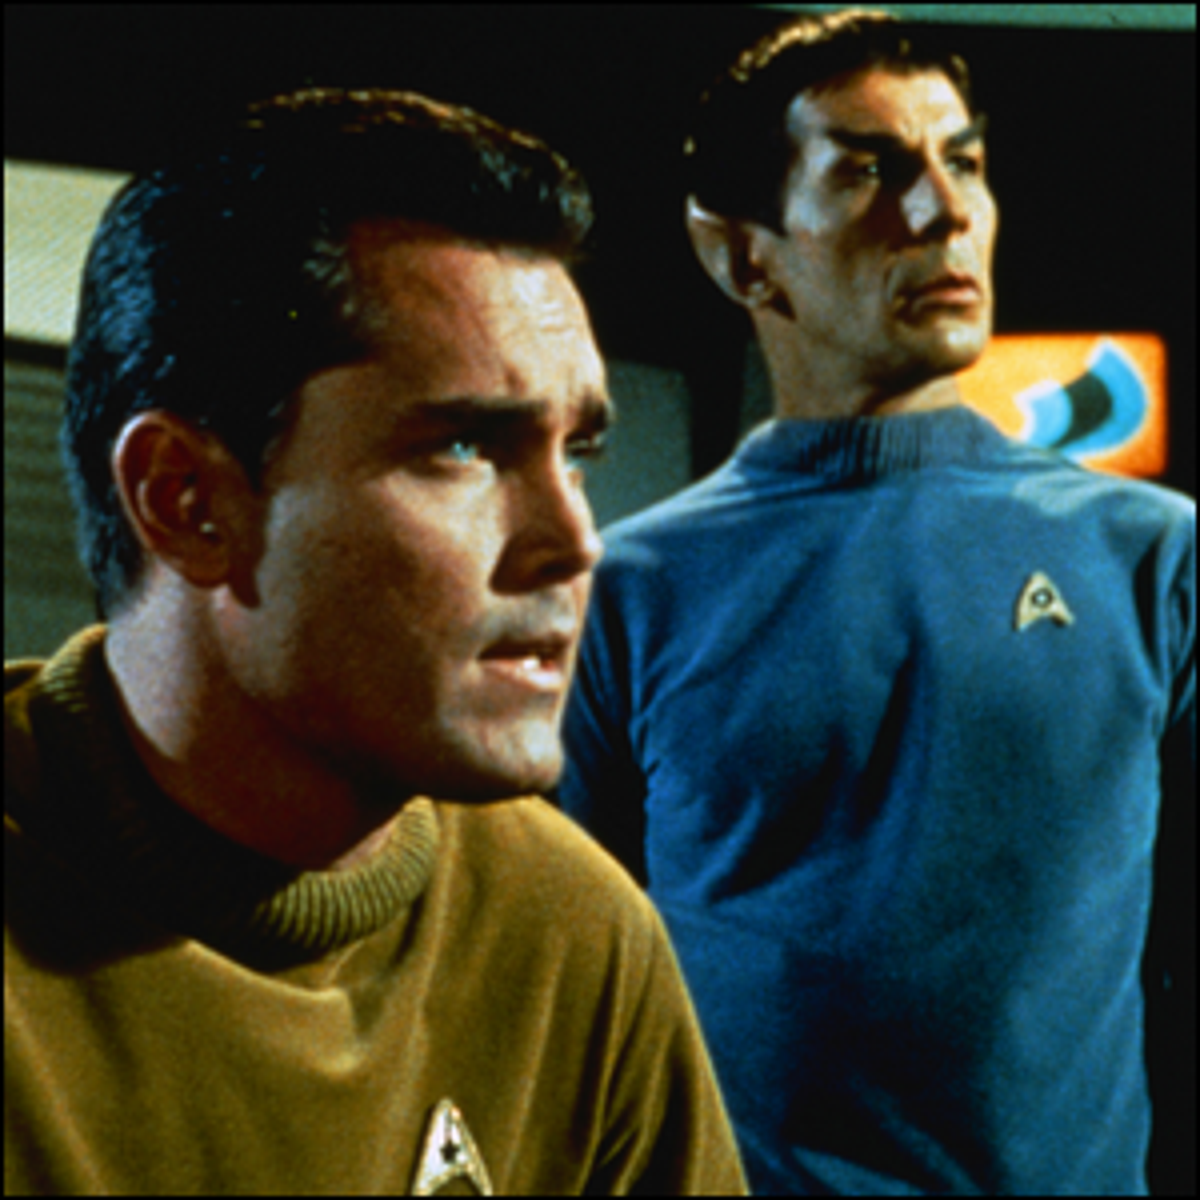 Leonard Nimoy starring as Mr. Spock in the first Star Trek pilot episode The Cage.